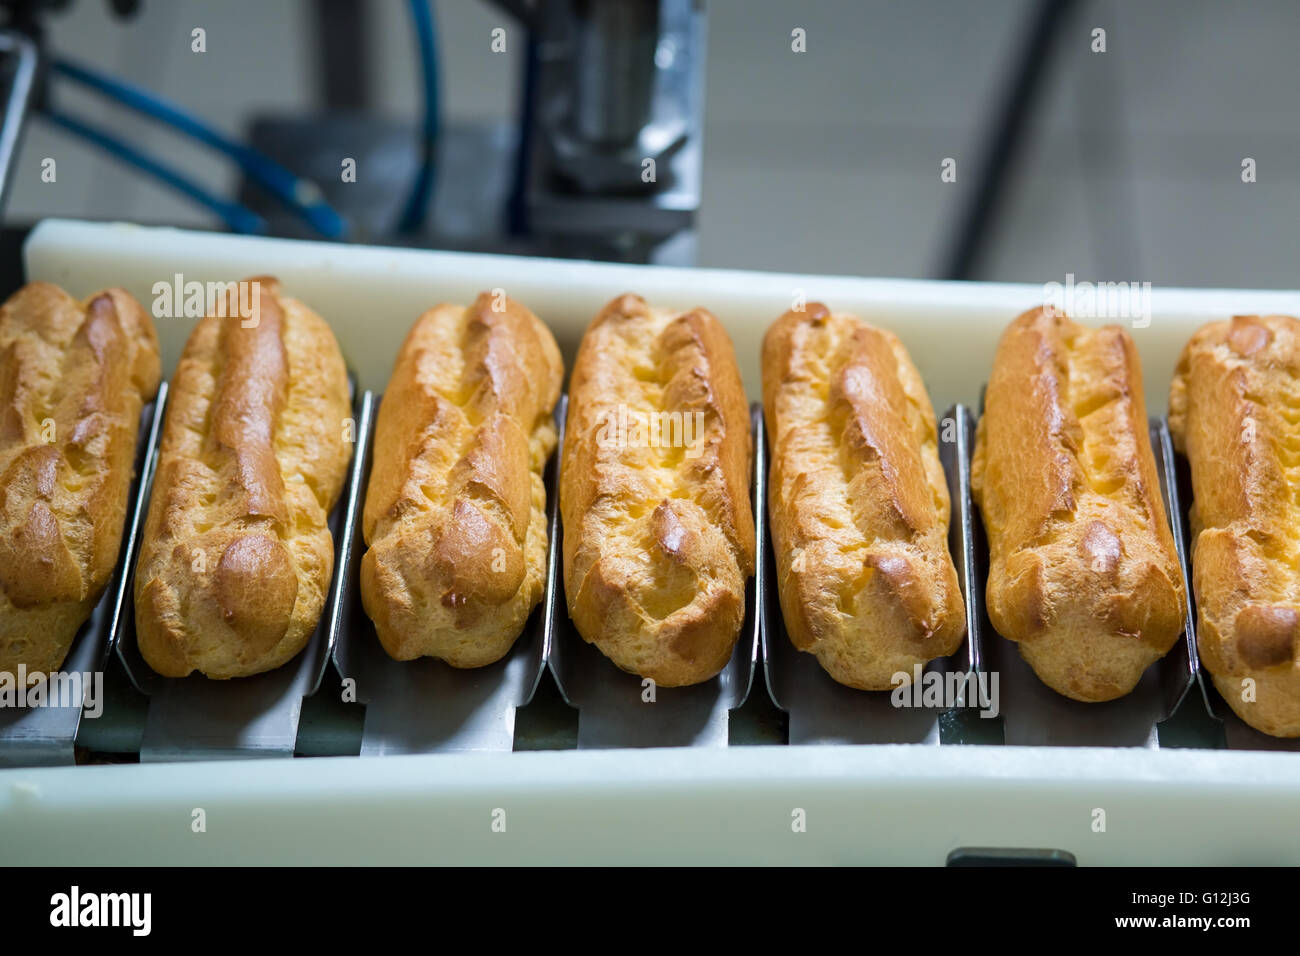 Conveyor line with eclairs. - Stock Image